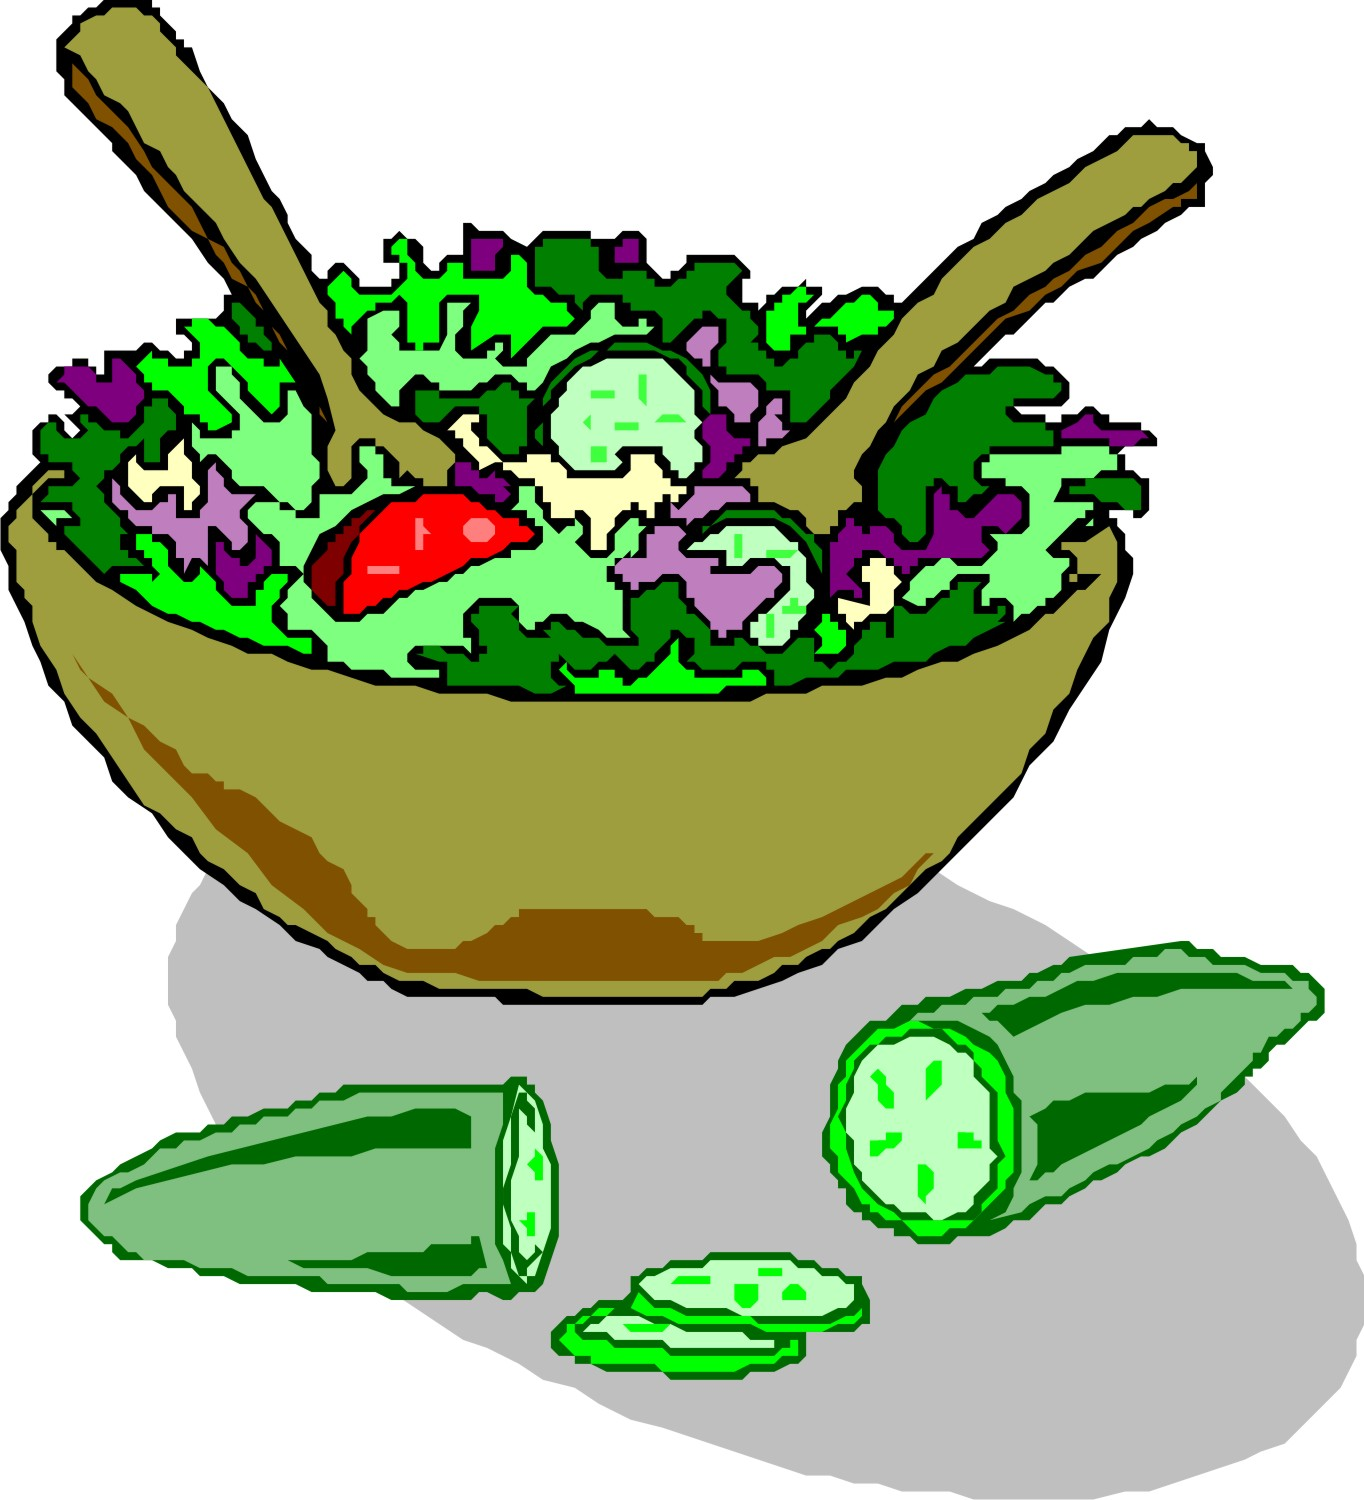 Iron Bowl 2017 >> Salad Bar Clipart | Clipart Panda - Free Clipart Images